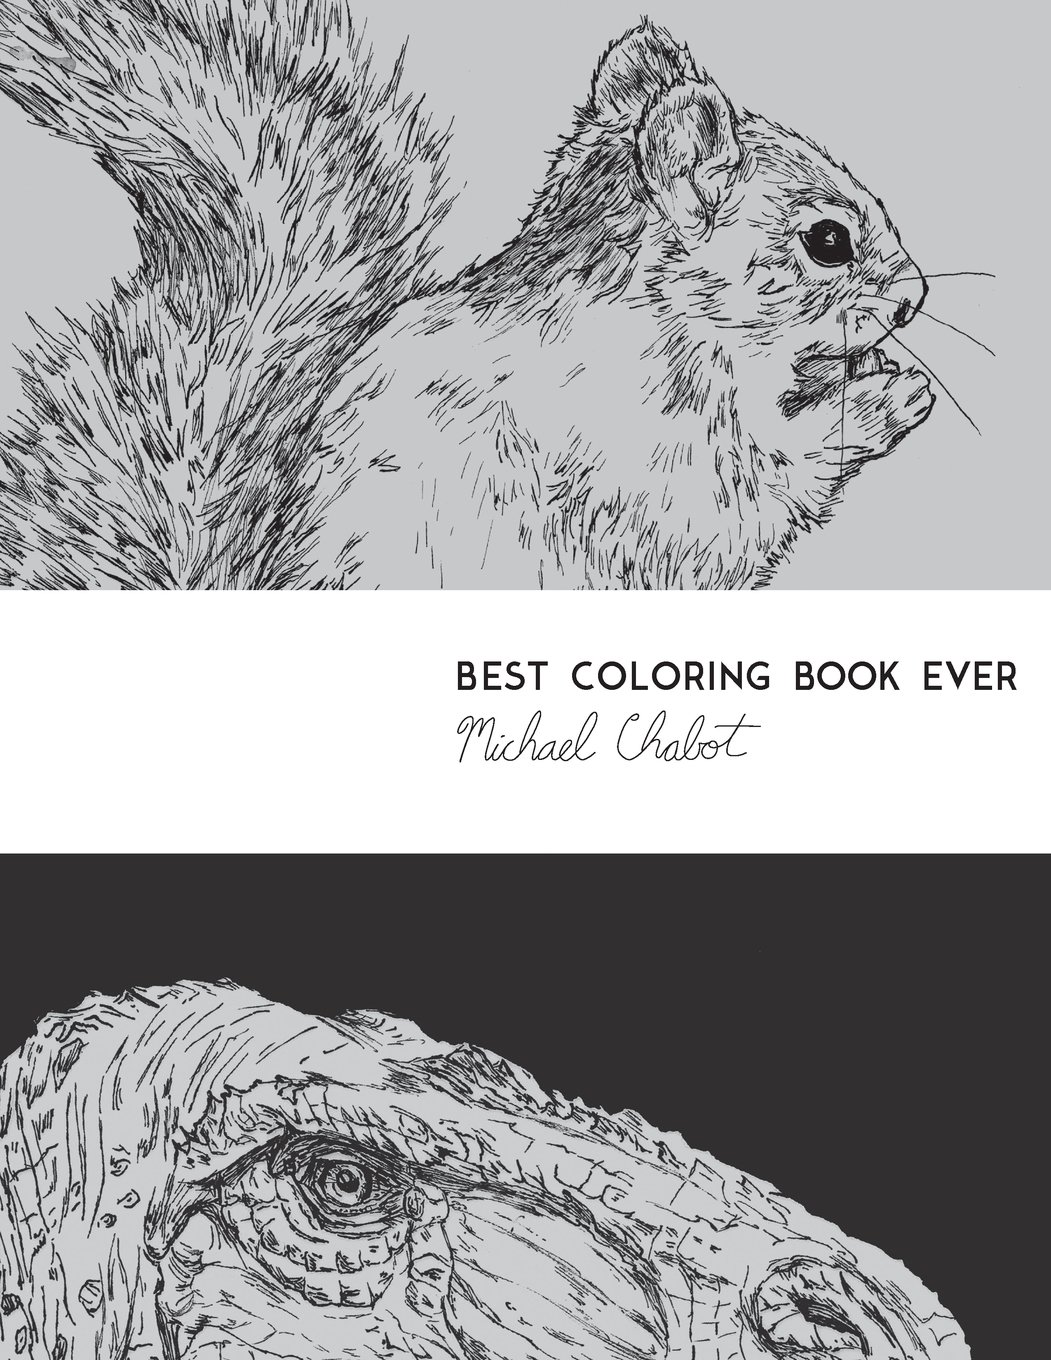 Best Coloring Book Ever!